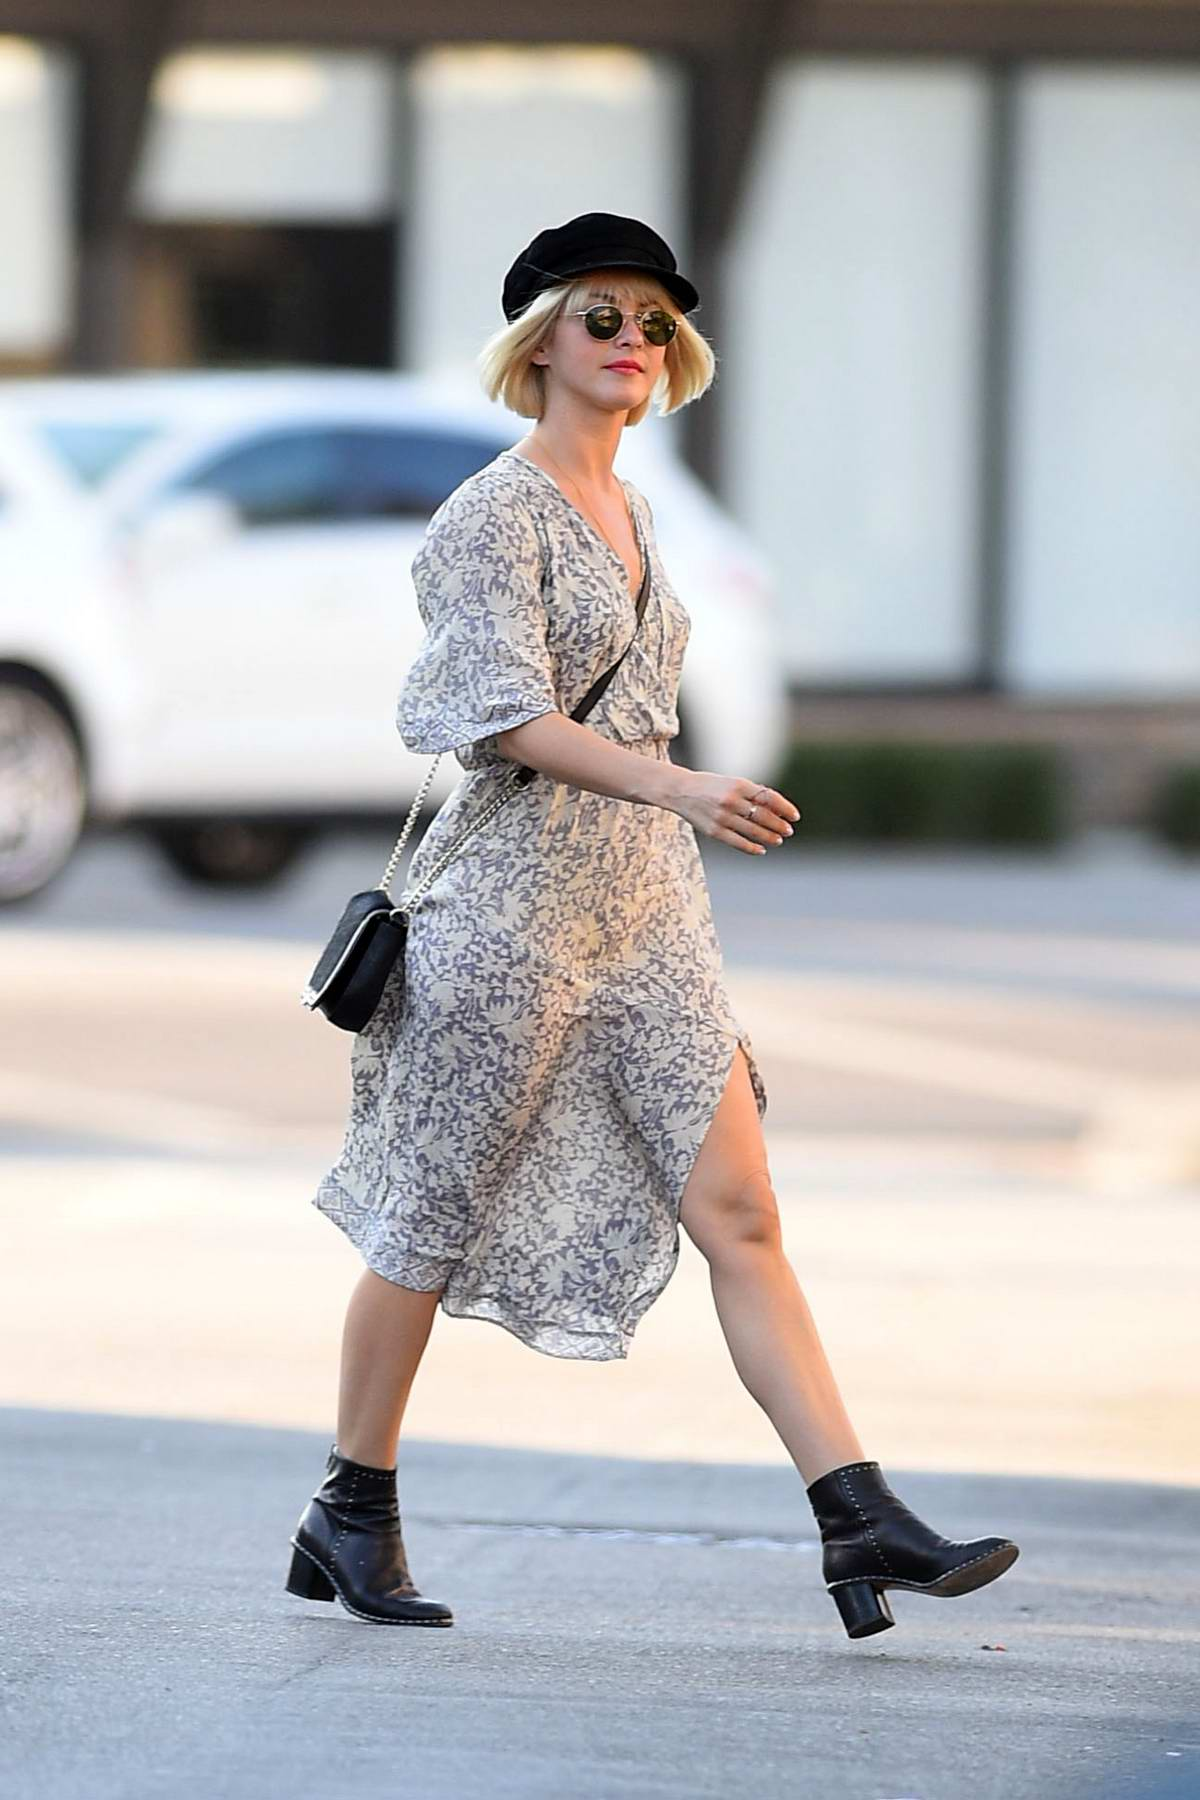 Julianne Hough looks lovely in a patterned white dress paired with ankle high boots and a black hat while out in Los Angeles